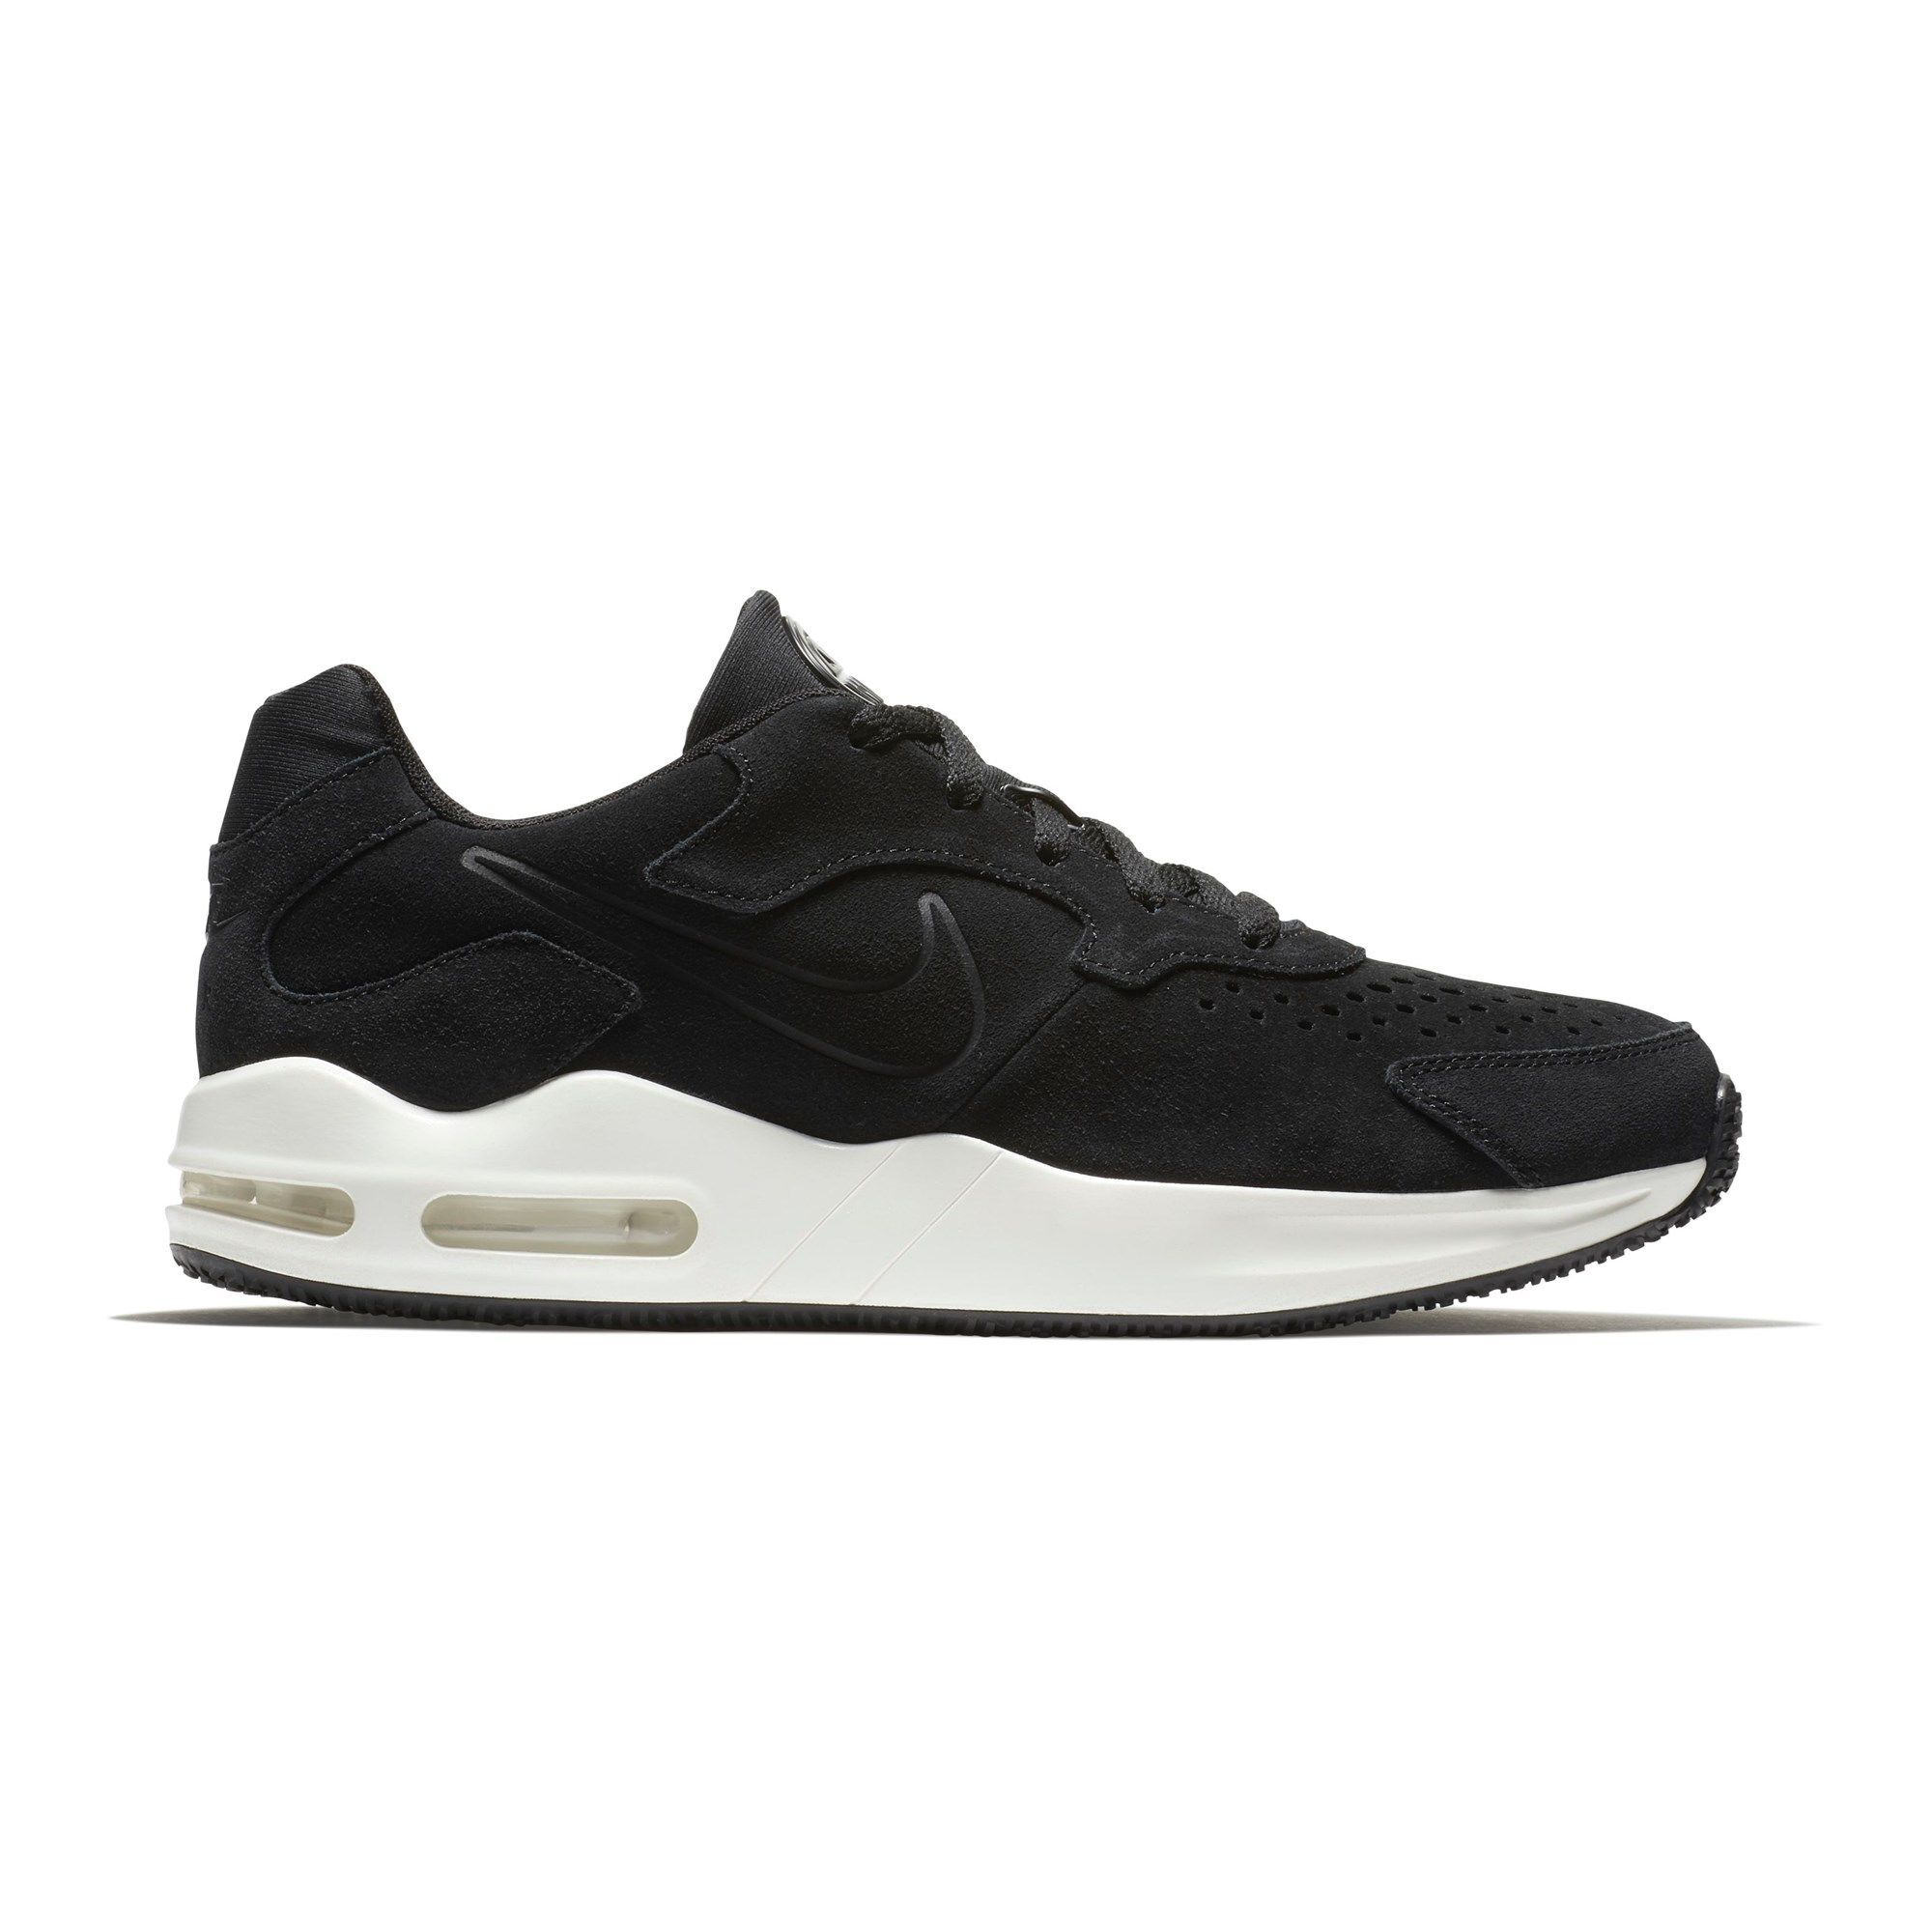 reputable site ac454 8940e ... new zealand nike air max guile premium herrer sort 494f4 9dce2